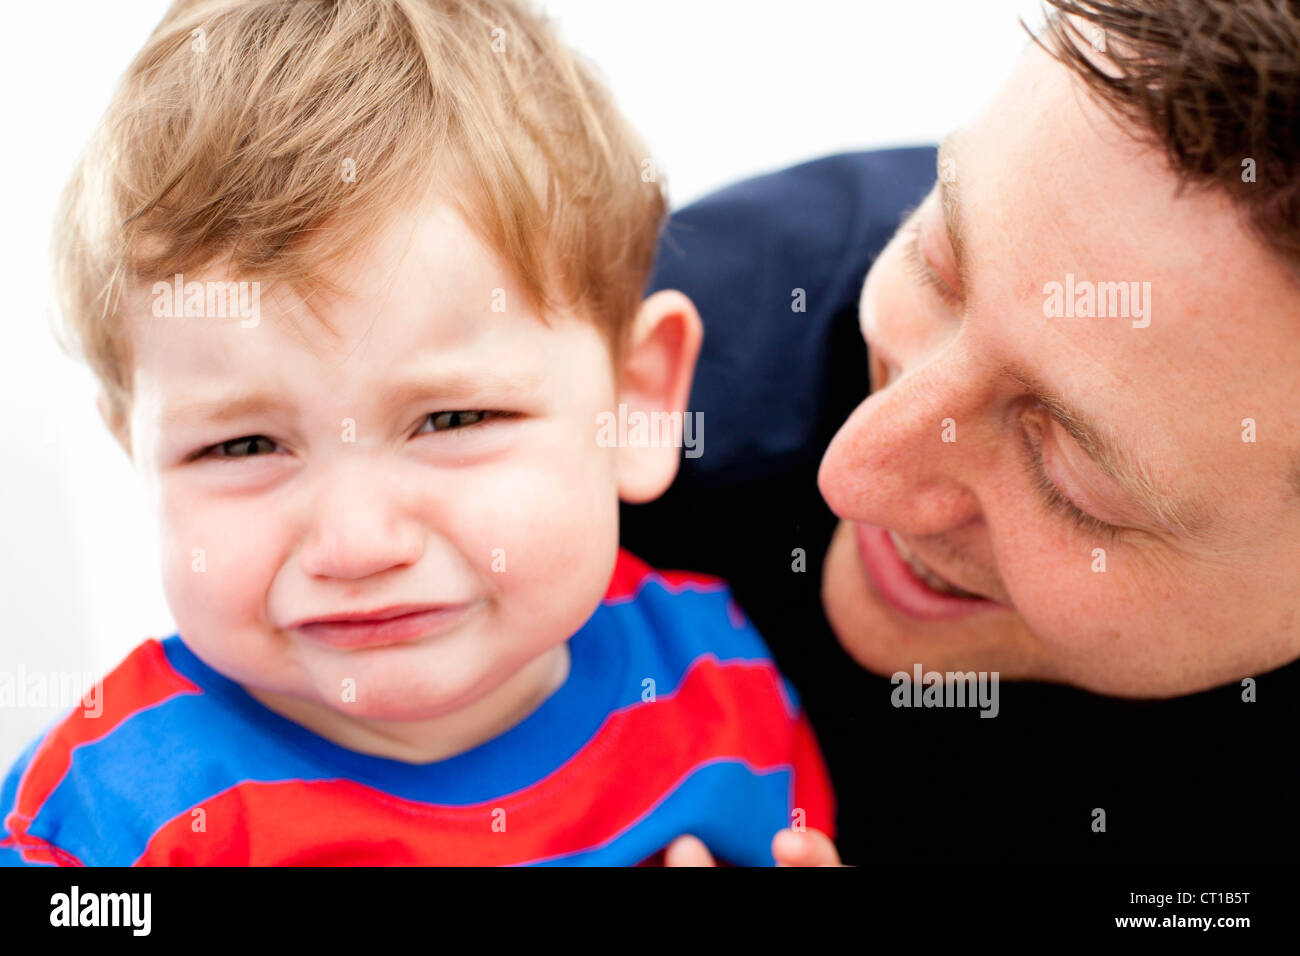 Father comforting crying son - Stock Image